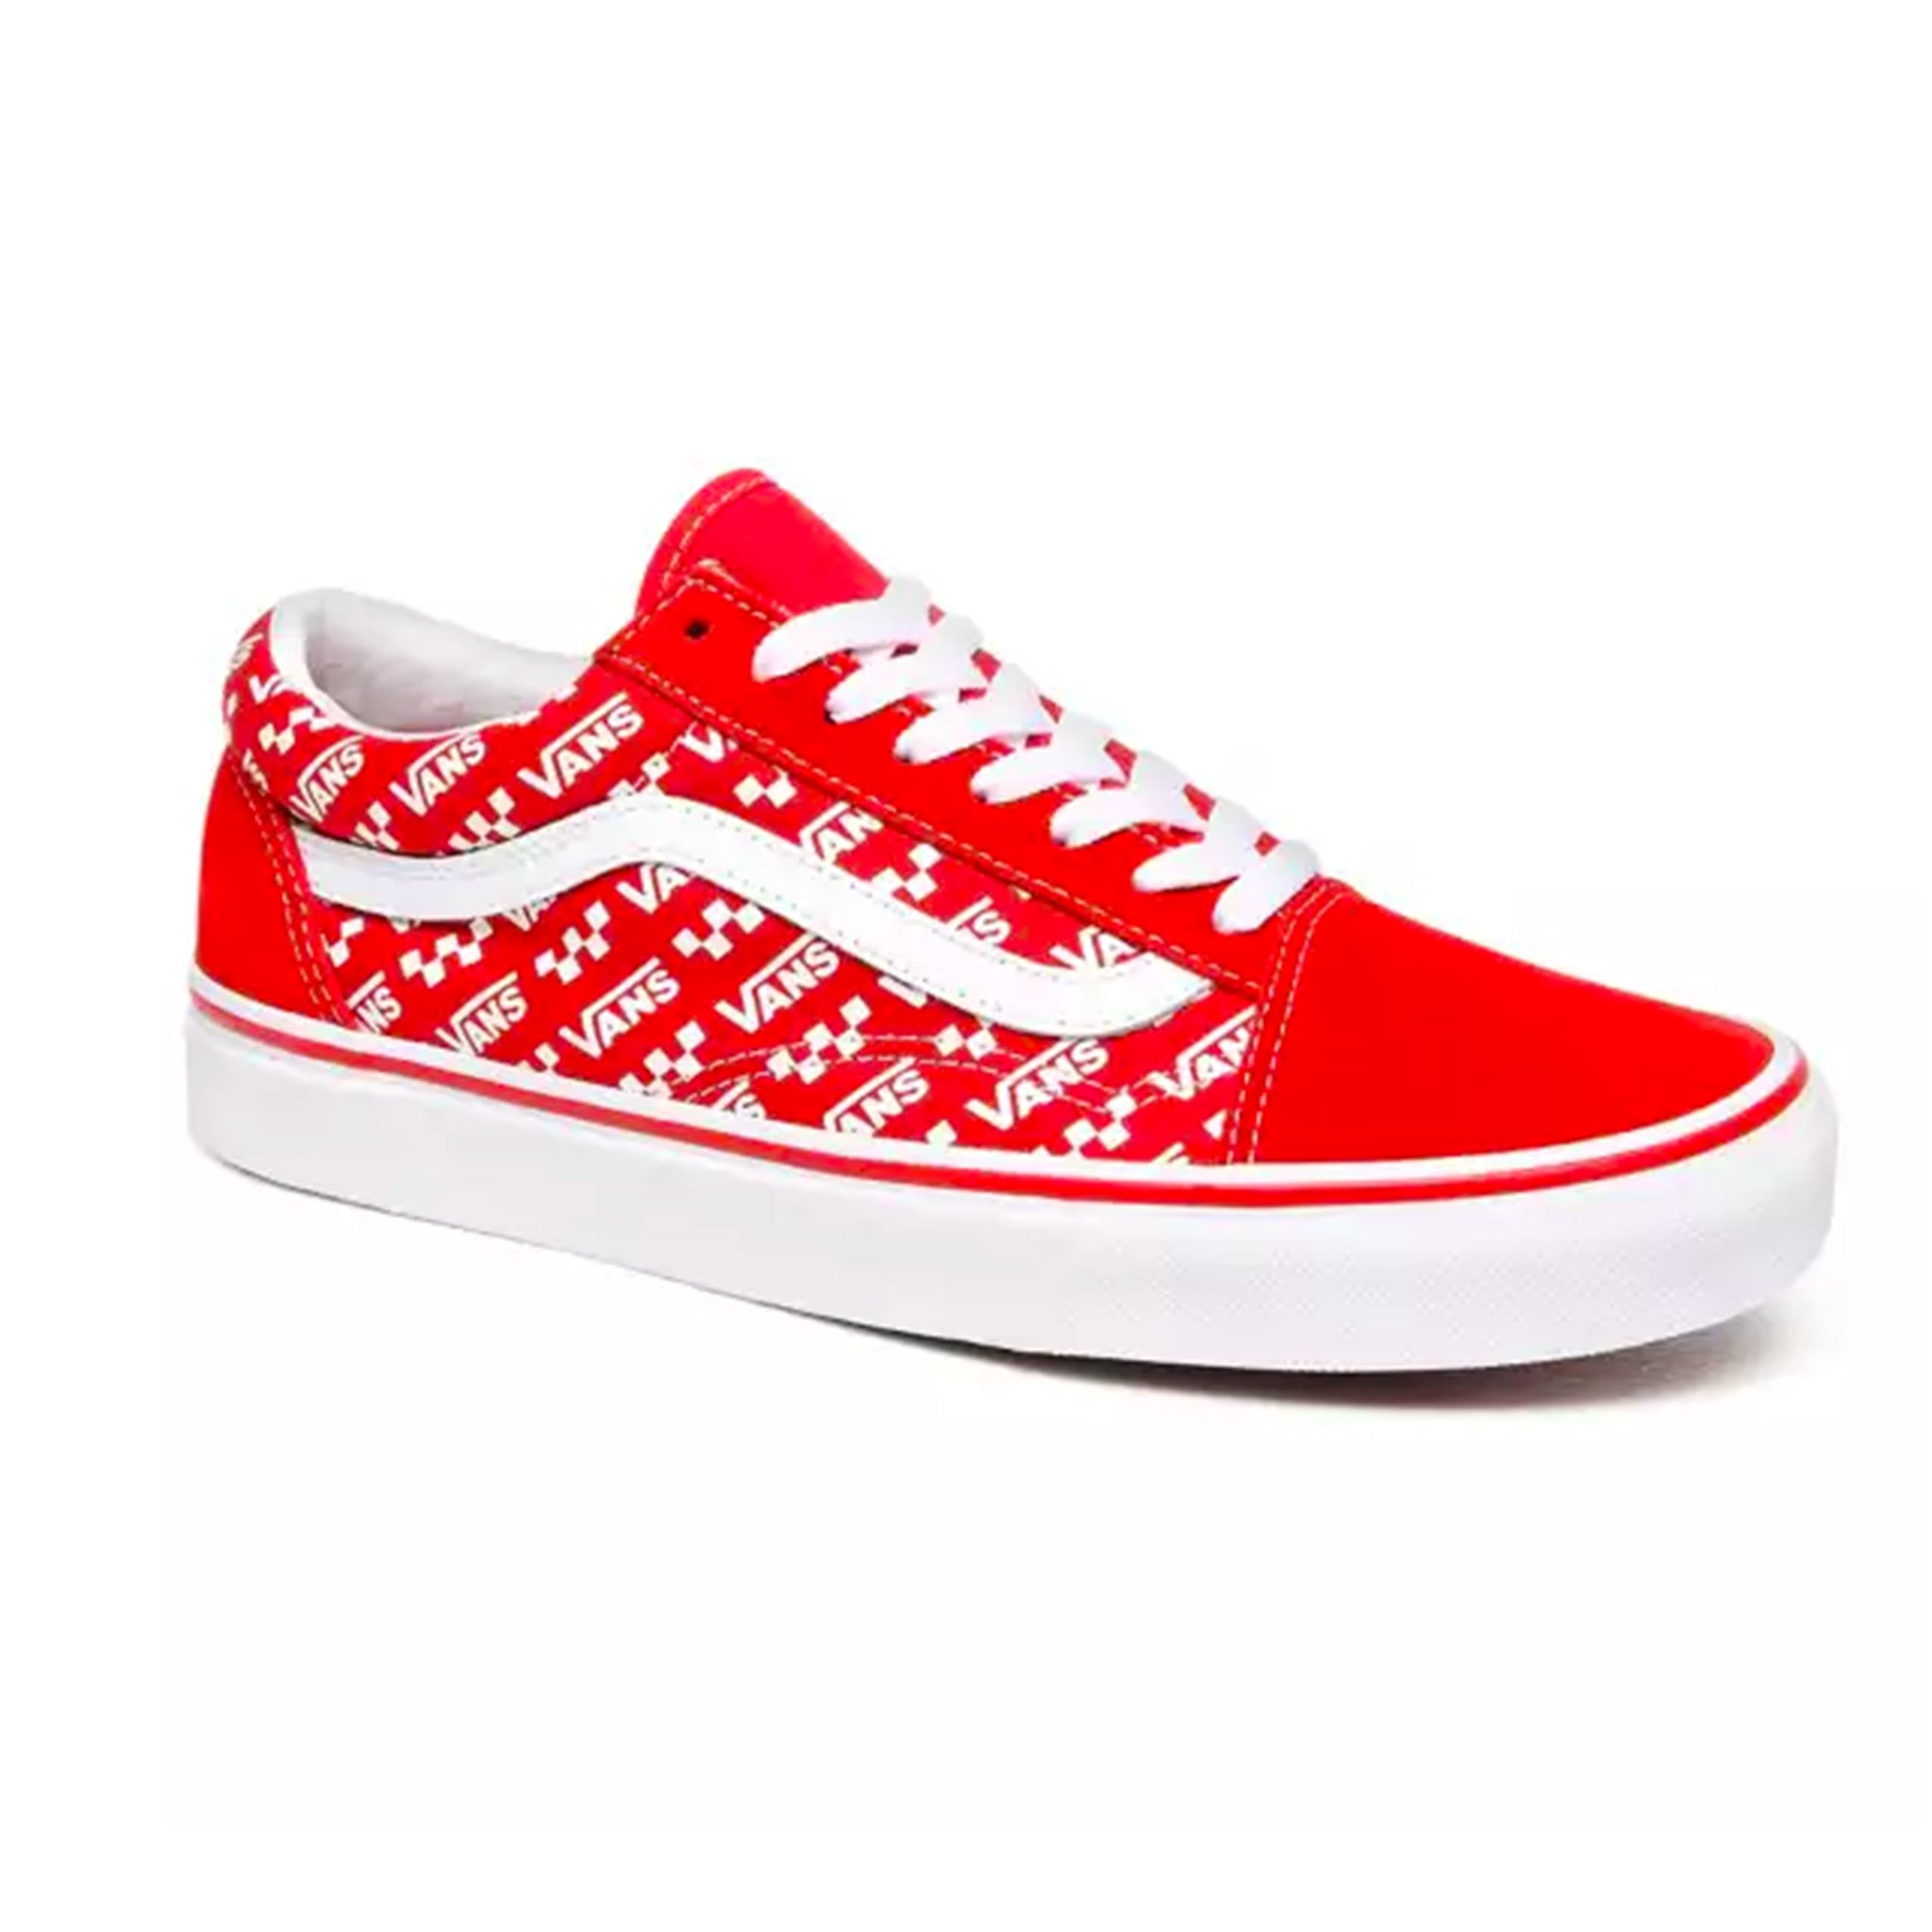 Vans Old Skool Logo Repeat Racing Red True White Finger In The Nose Free shipping on selected items. vans old skool logo repeat racing red true white